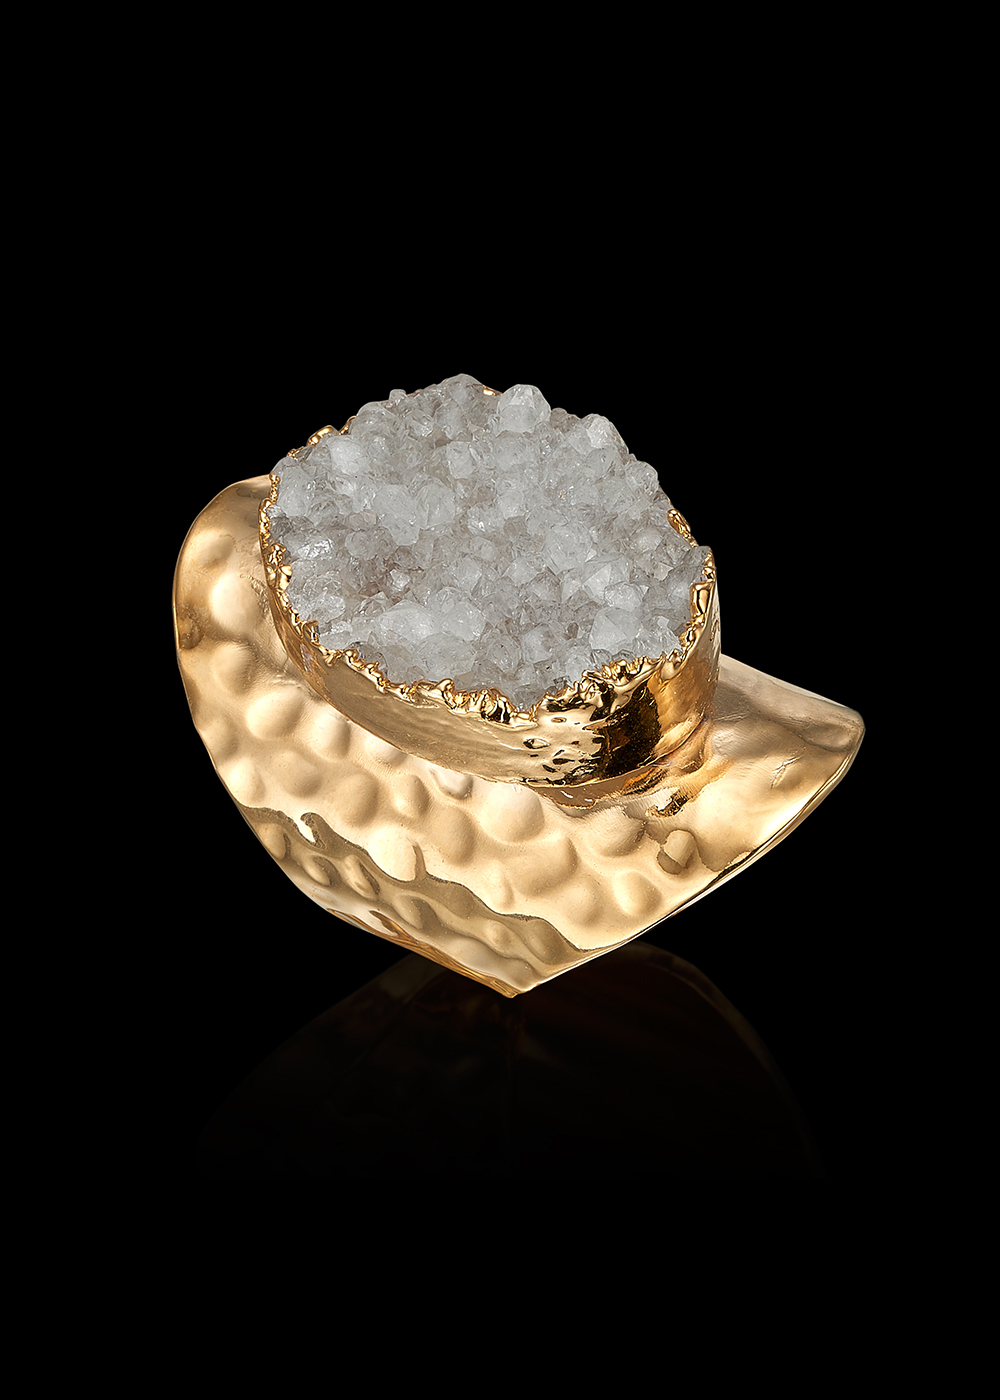 ALBA ring with White Calcedonia